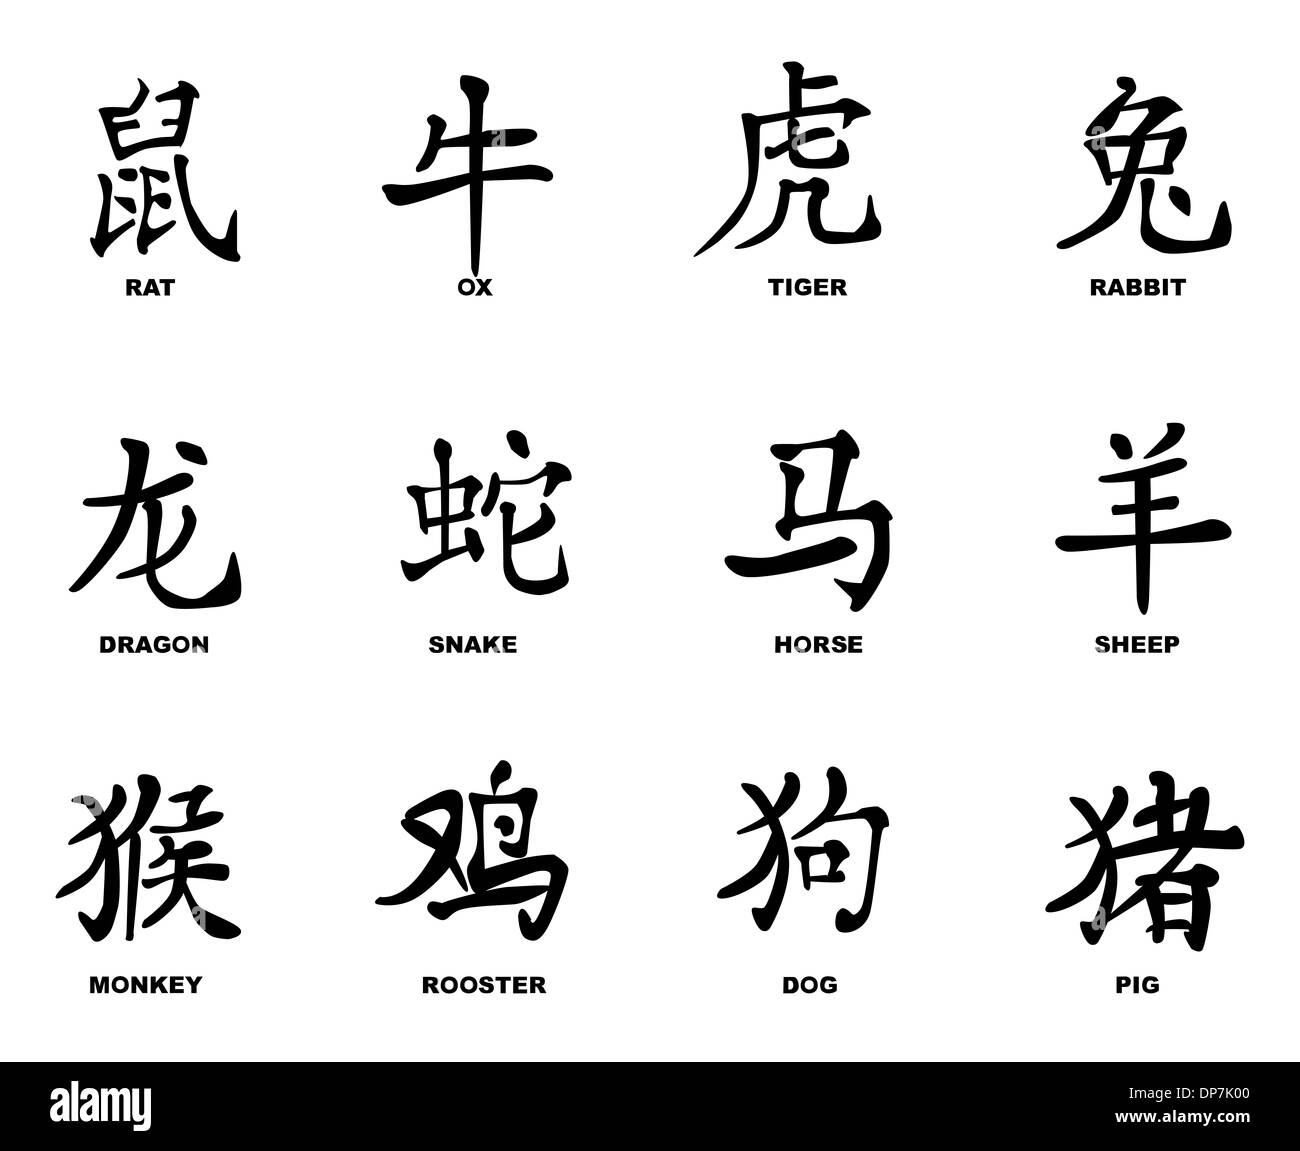 names in chinese writing